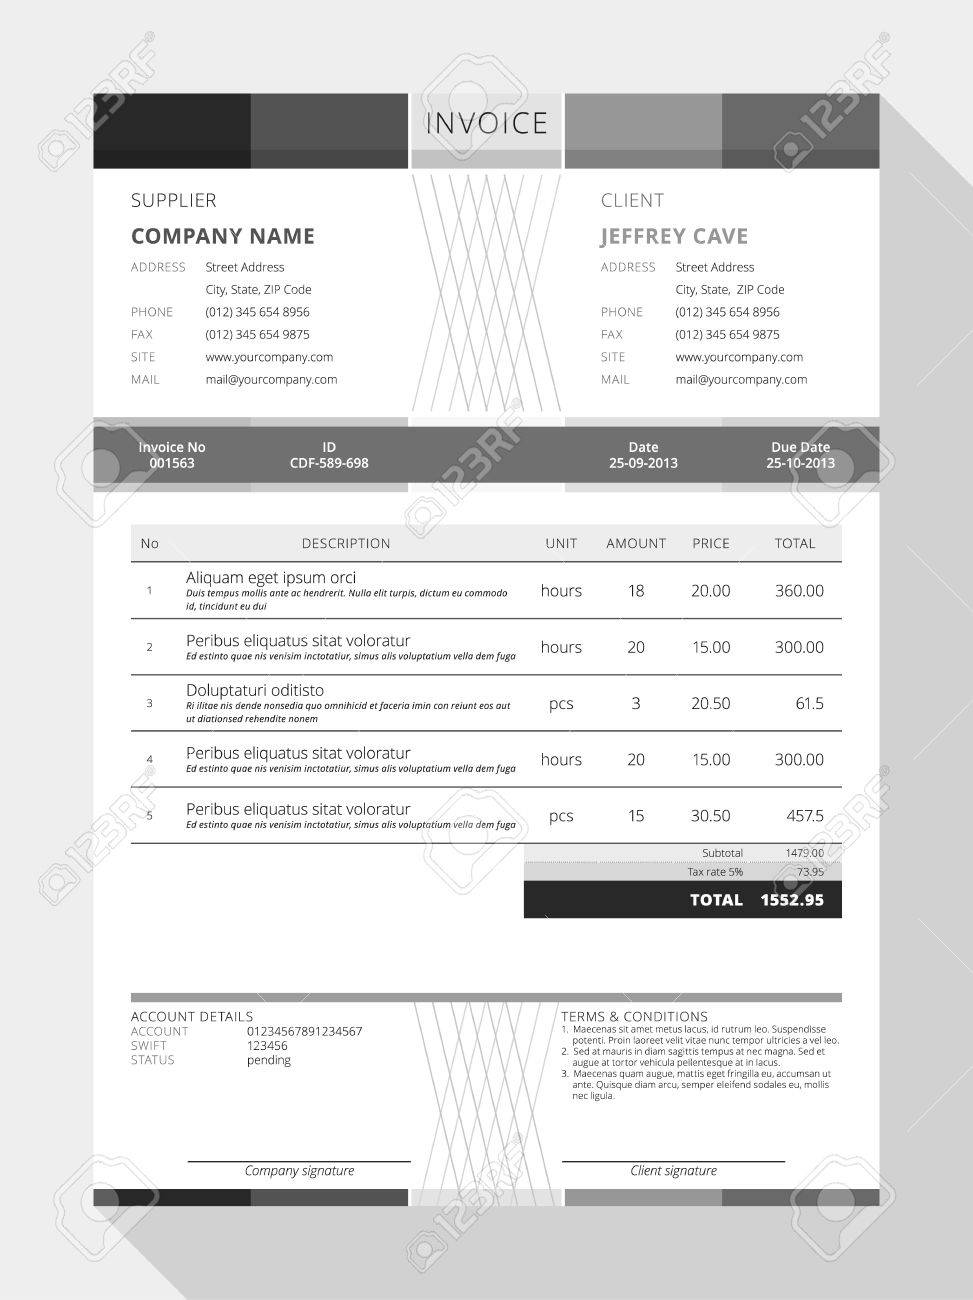 Thassosus  Fascinating Design An Invoice  Professional Graphic Design Invoice  With Heavenly Vector Customizable Invoice Form Template Design Vector   Design An Invoice With Attractive Invoice Page Also How To Do An Invoice In Excel In Addition Free Service Invoice Templates And Invoice In Word Format As Well As Best Free Invoice Software For Small Business Additionally Business Invoice Format From Happytomco With Thassosus  Heavenly Design An Invoice  Professional Graphic Design Invoice  With Attractive Vector Customizable Invoice Form Template Design Vector   Design An Invoice And Fascinating Invoice Page Also How To Do An Invoice In Excel In Addition Free Service Invoice Templates From Happytomco